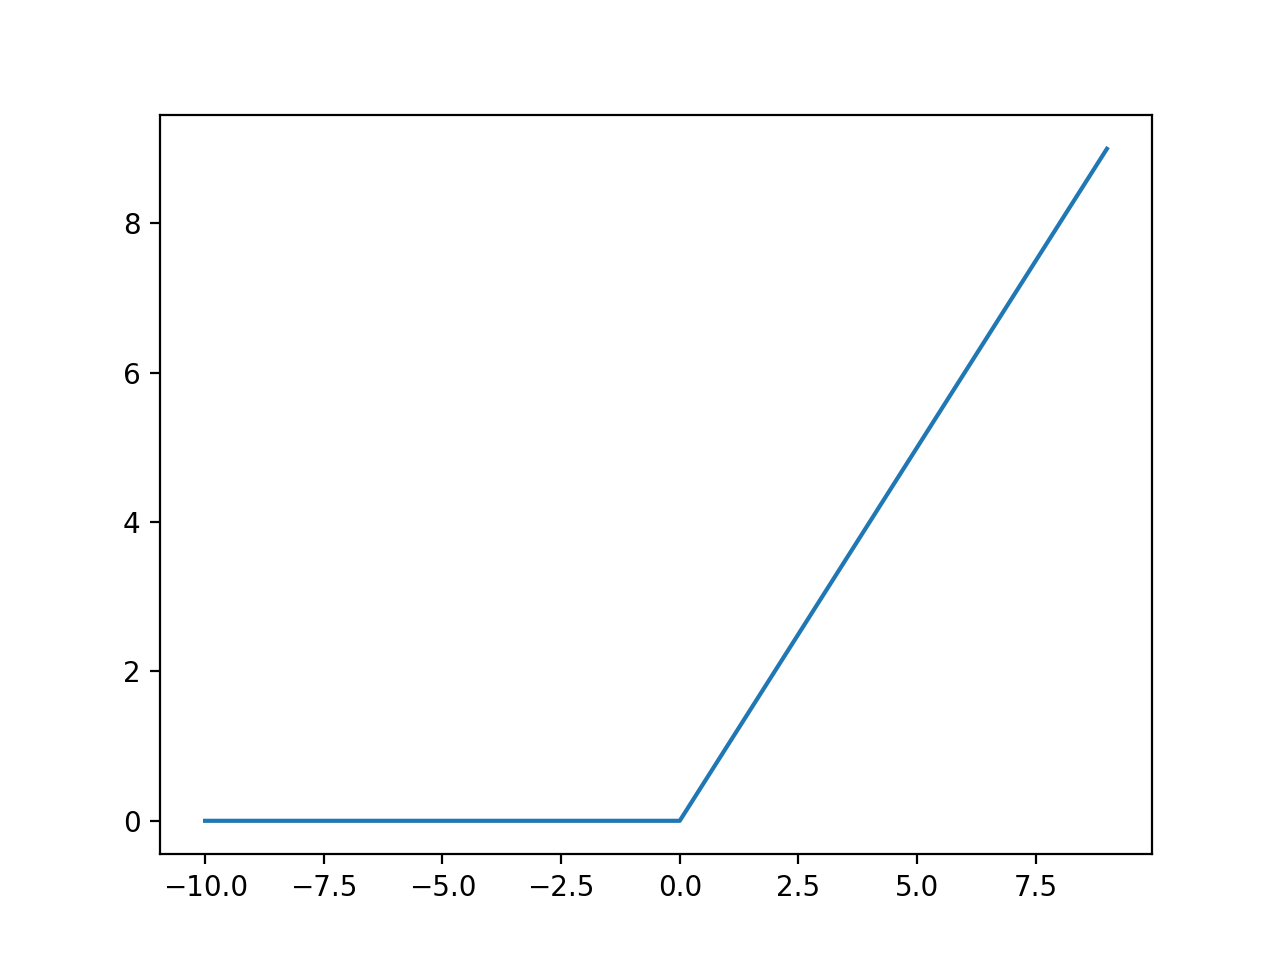 Plot of Inputs vs. Outputs for the ReLU Activation Function.